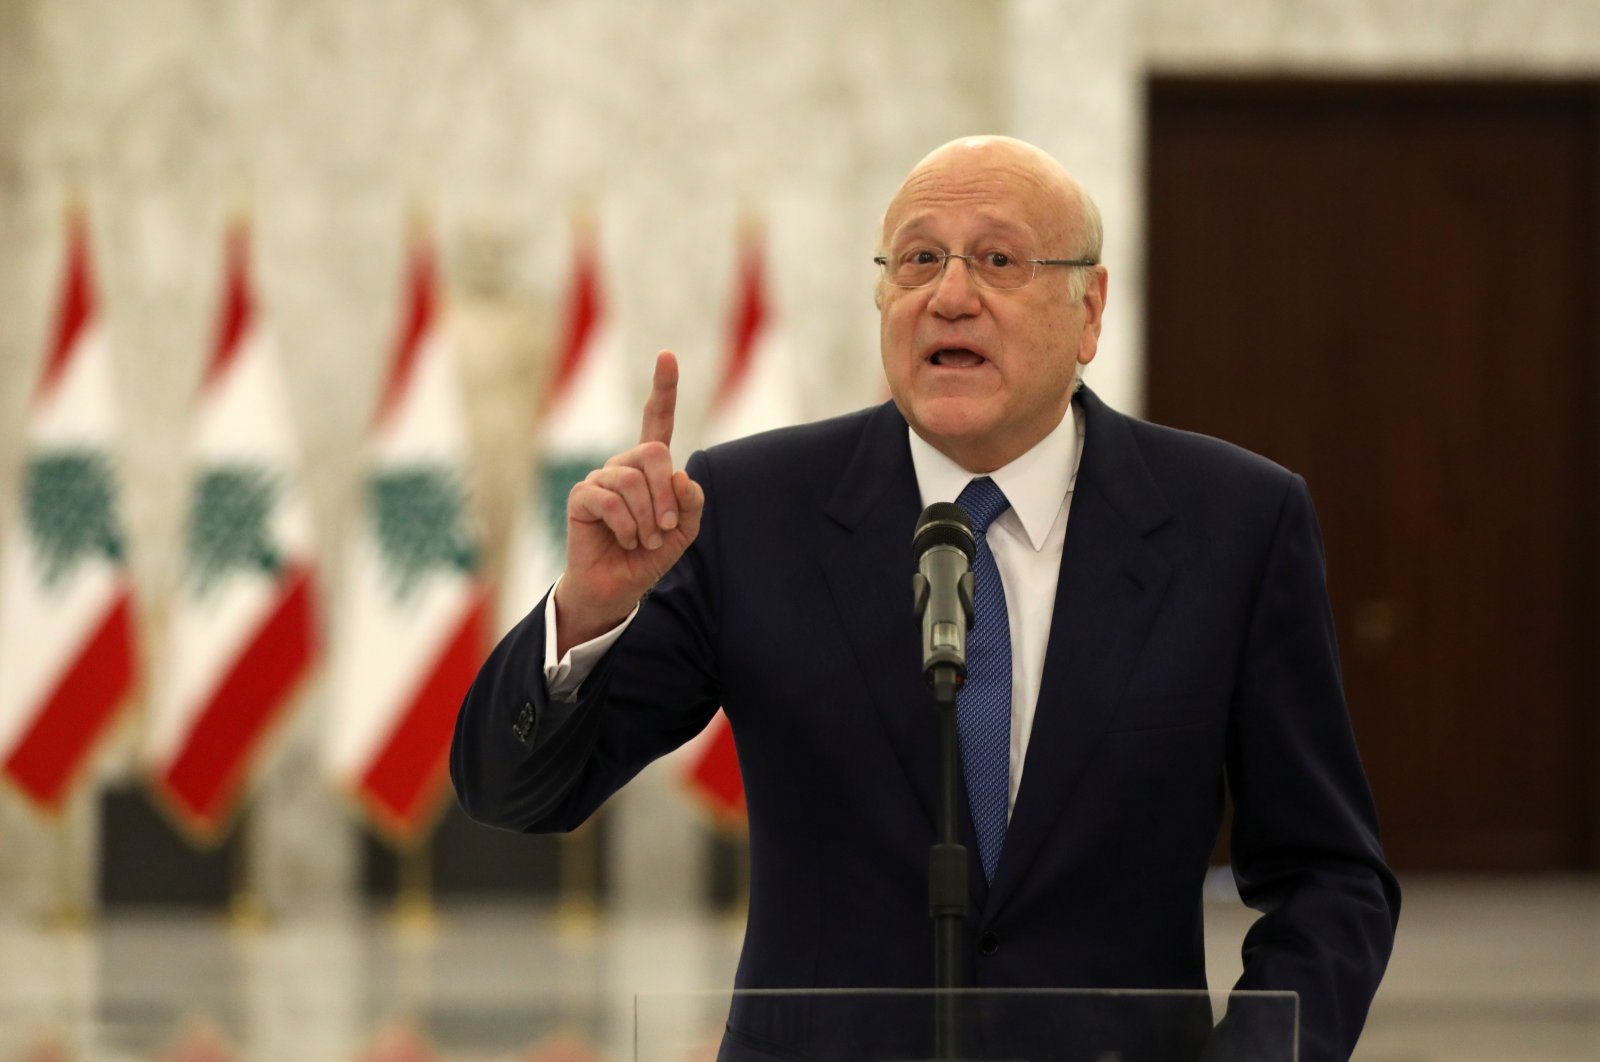 Lebanon's Prime Minister Najib Mikati gestures as he speaks to the press after meeting with President Michel Aoun at the presidential palace in Baabda, Lebanon, Sept. 10, 2021. (Reuters Photo)